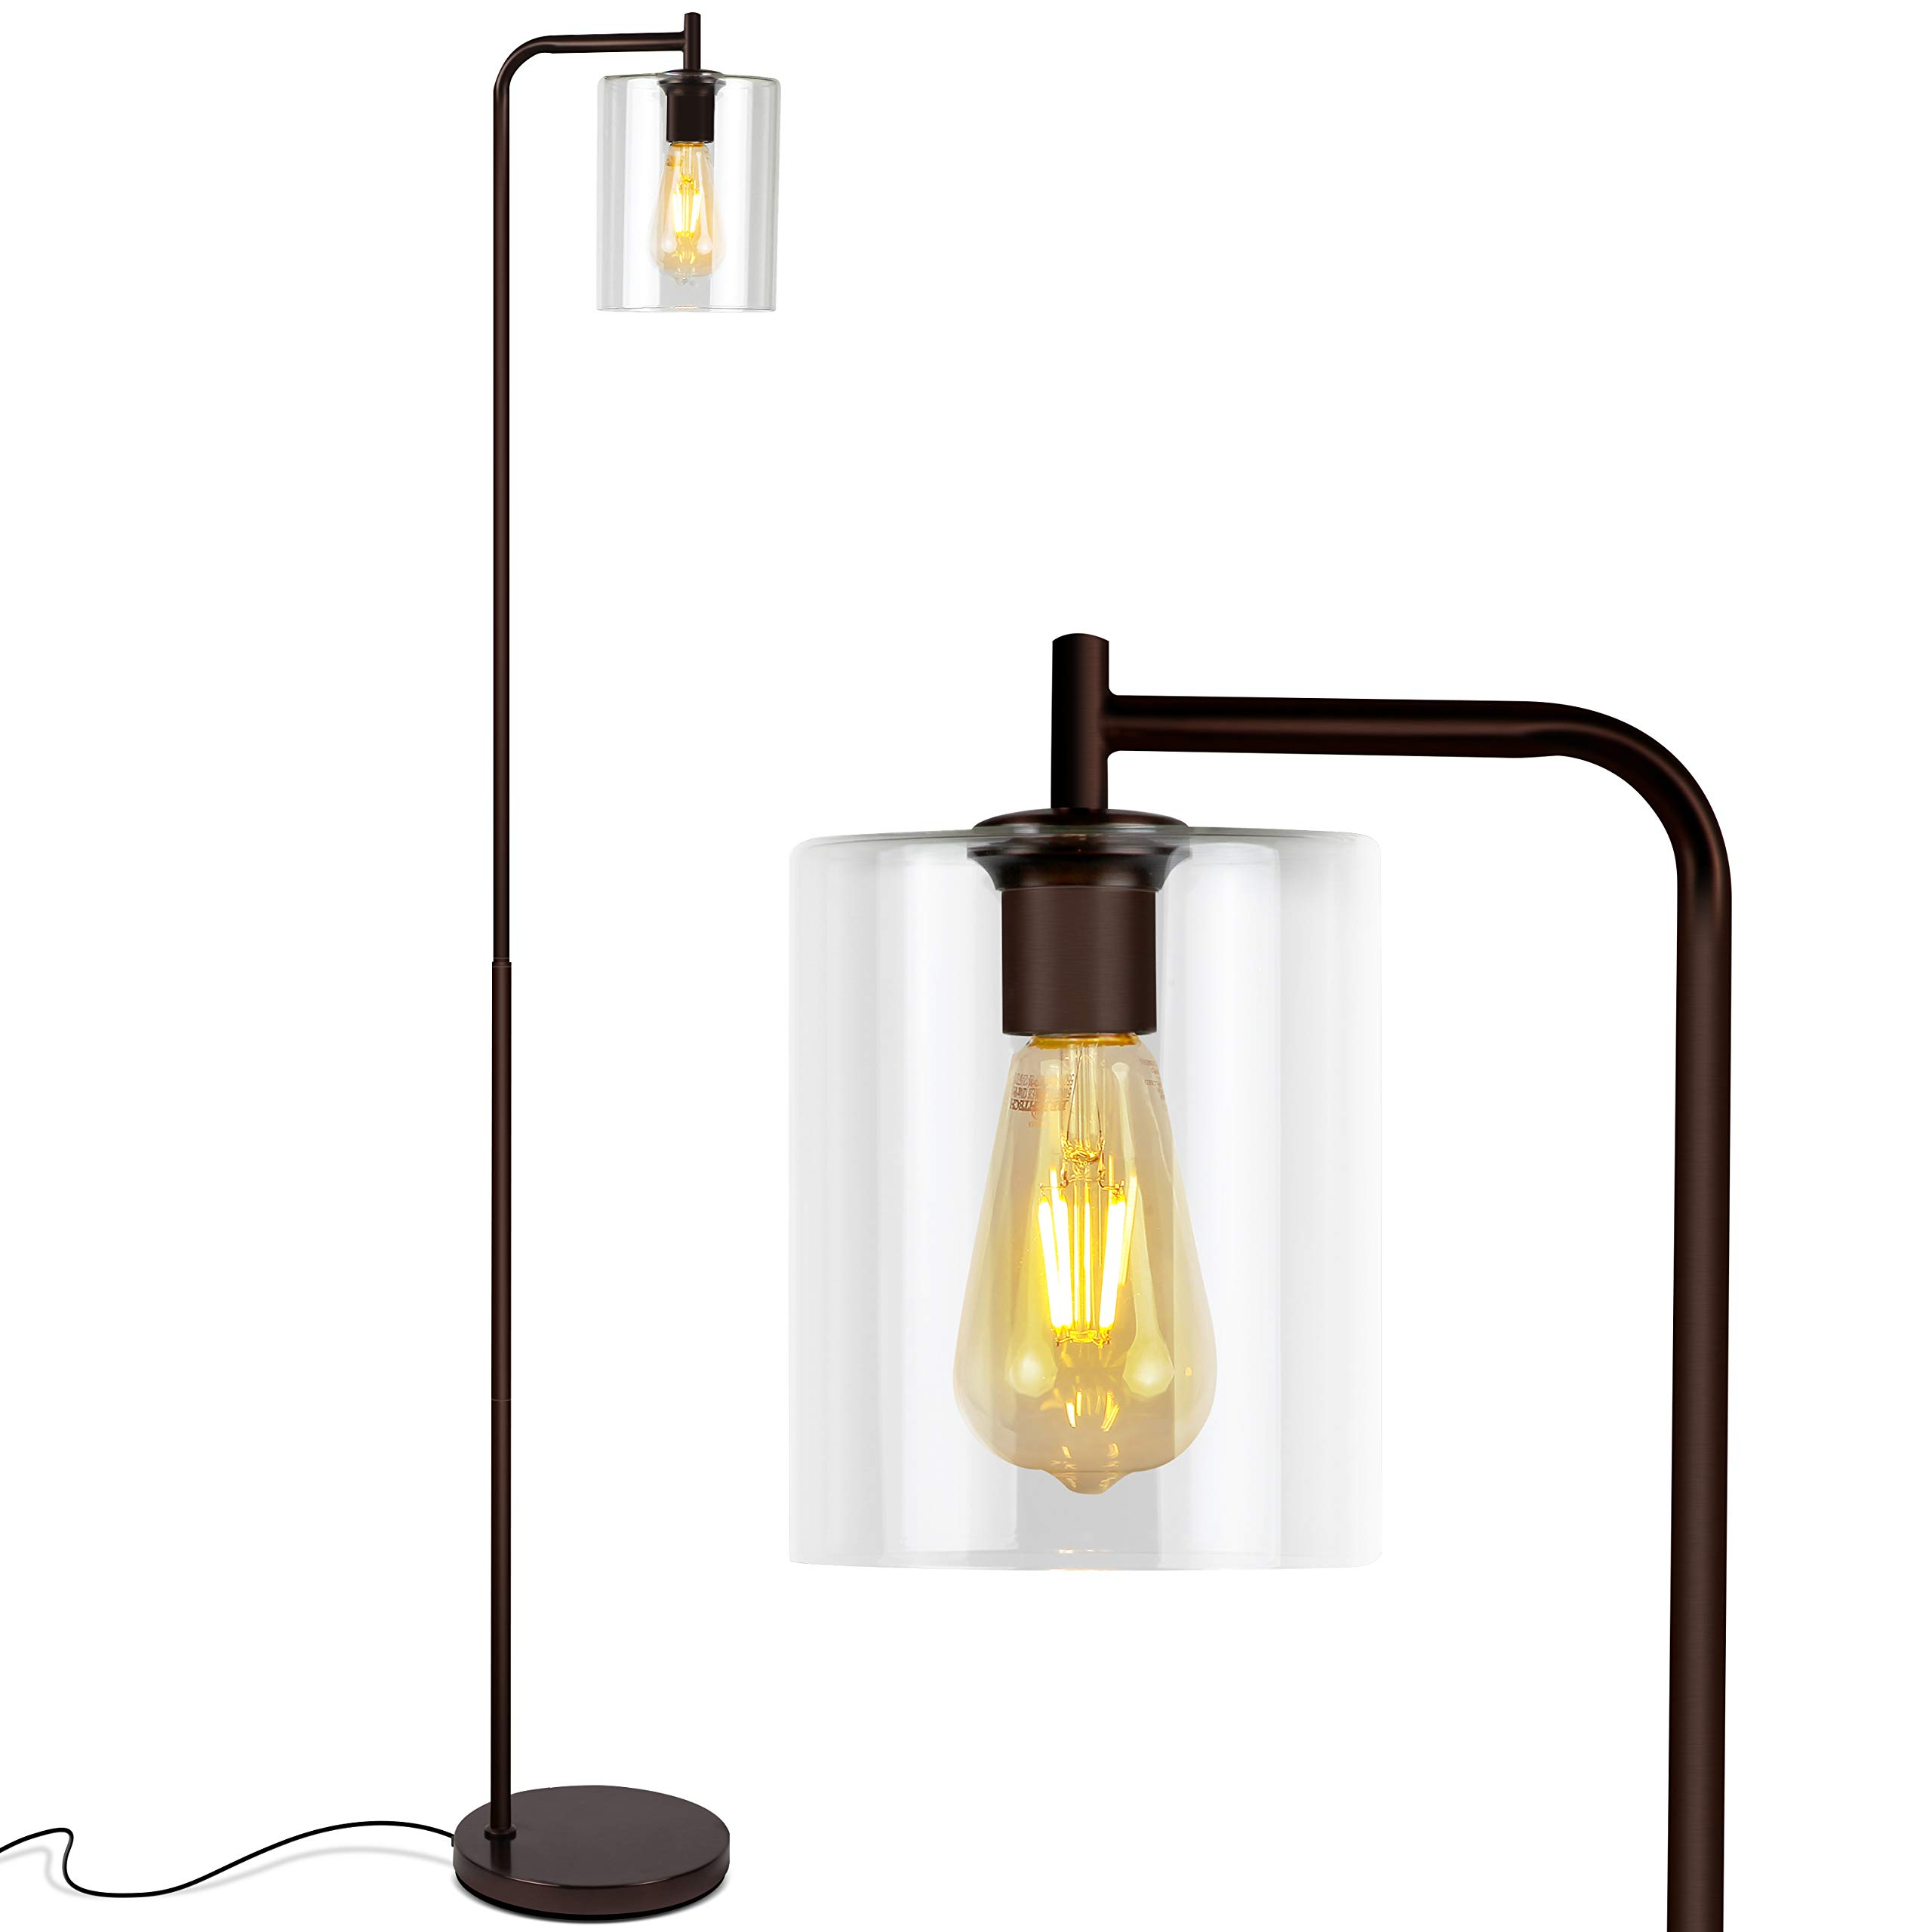 Brightech Elizabeth - Bedroom & Living Room LED Floor Lamp - Standing Industrial Light with Hanging Glass Lamp Shade - Tall Pole Downlight for Office - with LED Bulb - Oil Brushed Bronze by Brightech